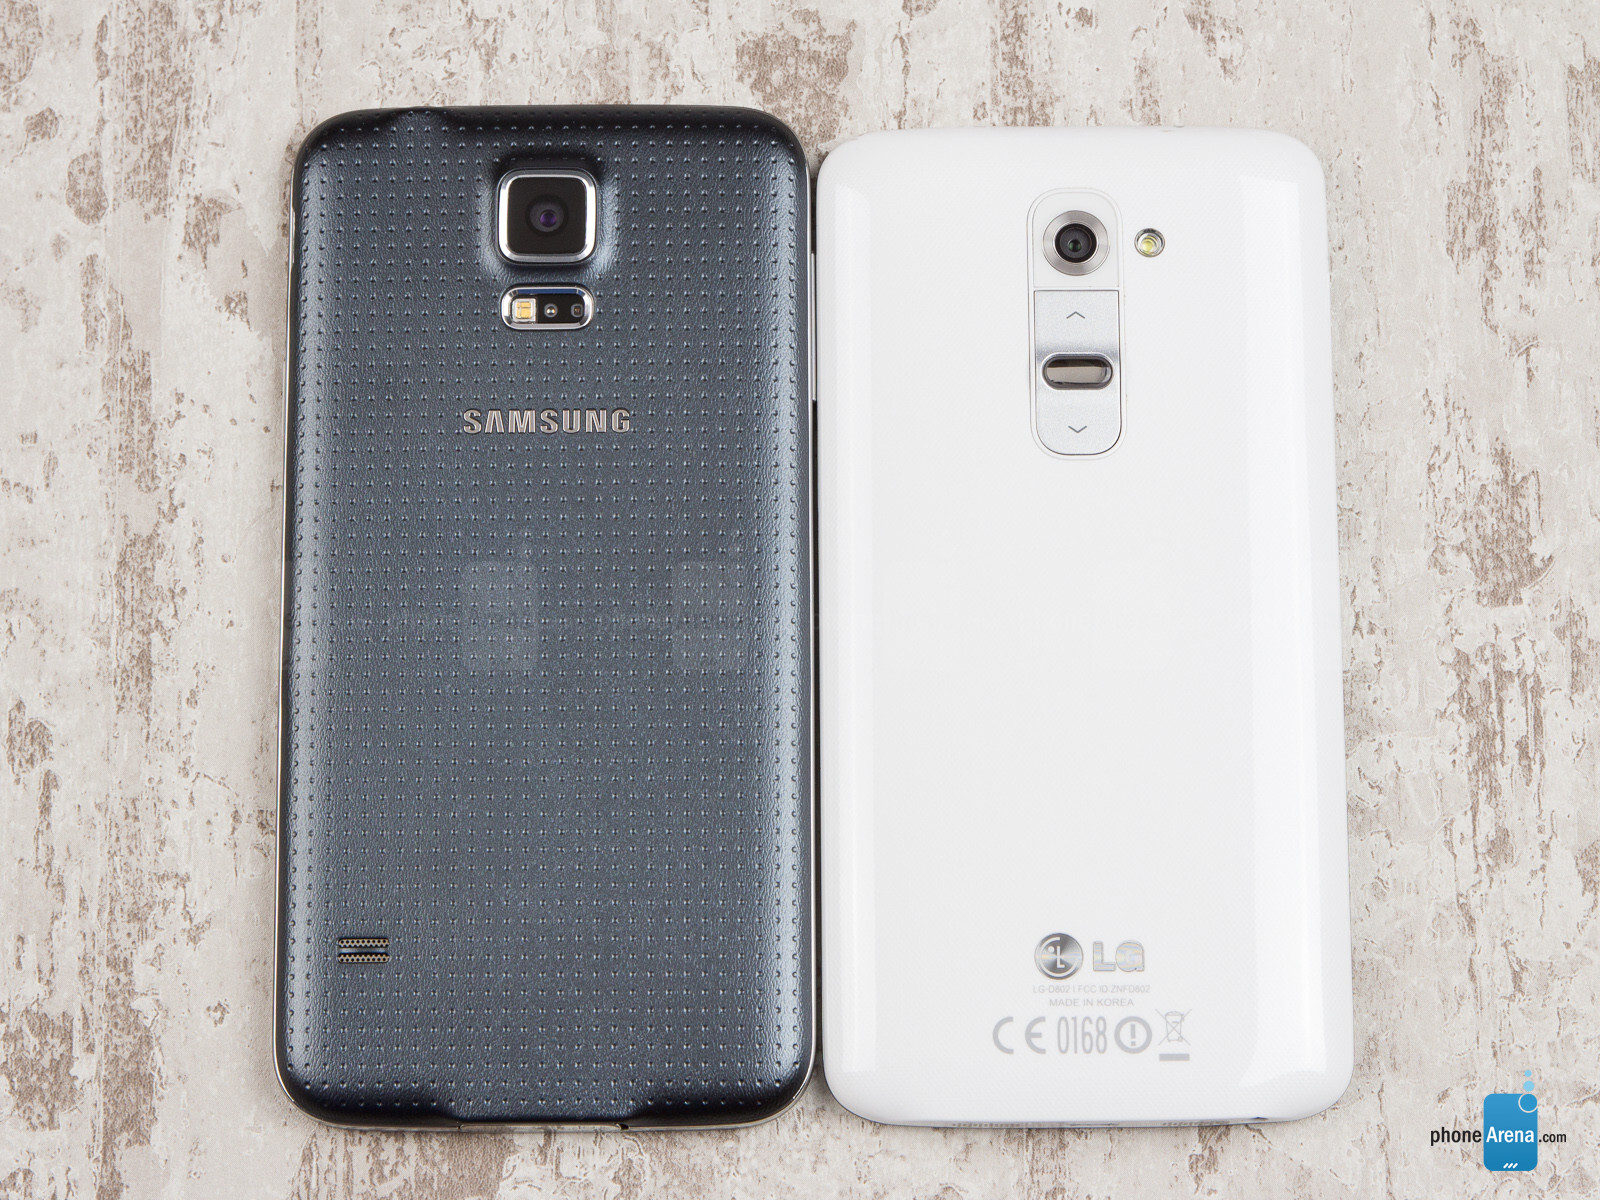 Samsung Galaxy Note 5 Color  parison 634283 further How To Sell An Iphone Without Getting Ripped Off as well Htc One M10 Renders Surface further Galaxy A5 E A7 2016 Tem Capinhas Oficiais Preco  eca Em R 49 further Apple Iphone 6s Price In Pakistan. on camera samsung galaxy s6